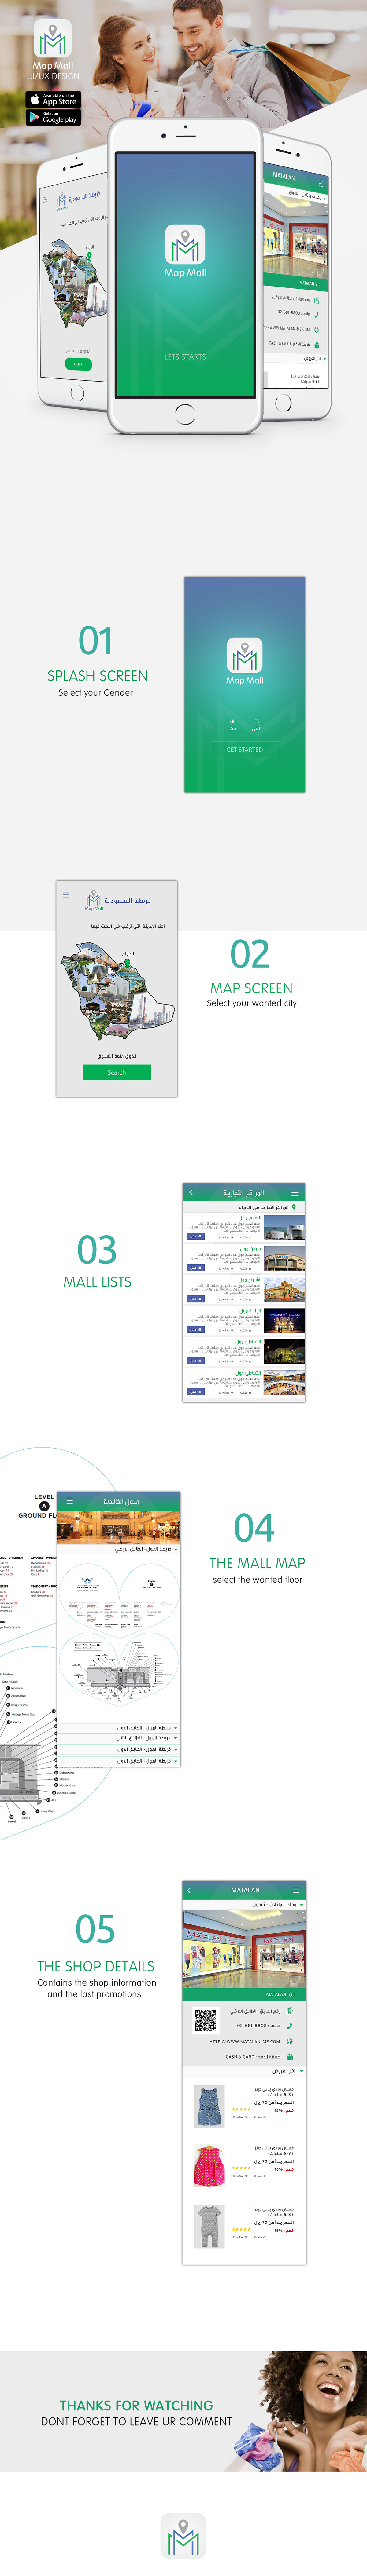 Map Mall App on Student Show Mall Map App on real estate app, employment app, mall maps windows phone 8,